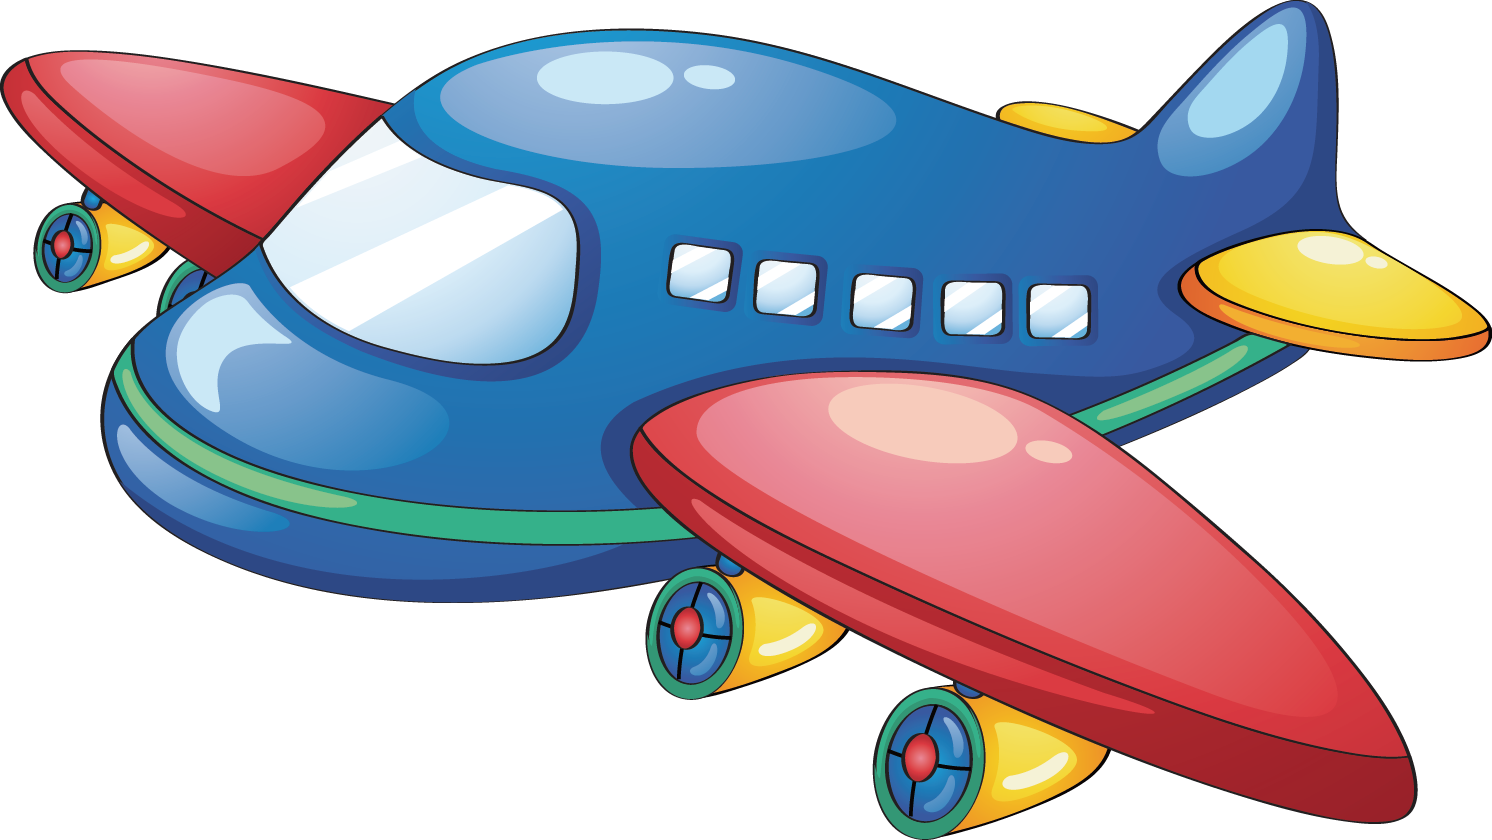 Clipart rocket air transport. Airplane aircraft child royalty